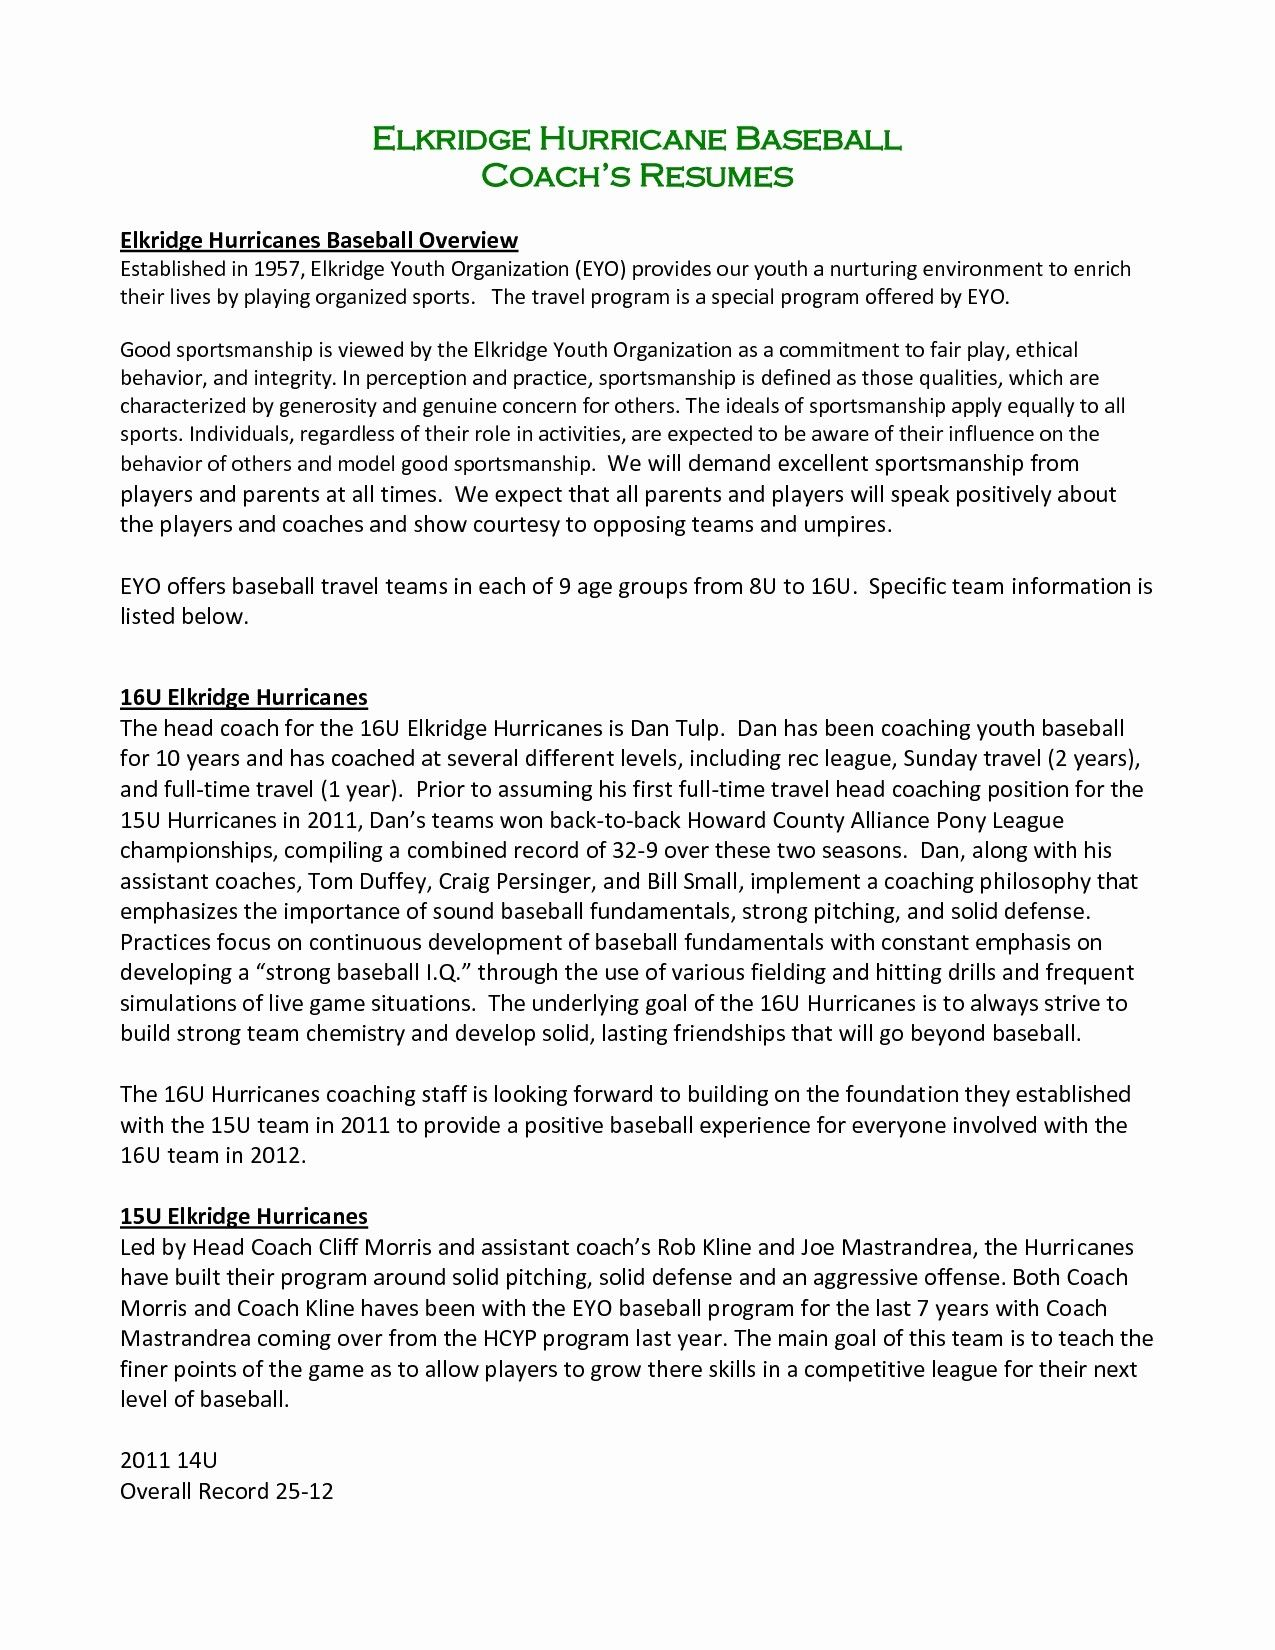 Best of elegant basketball resume template for player in